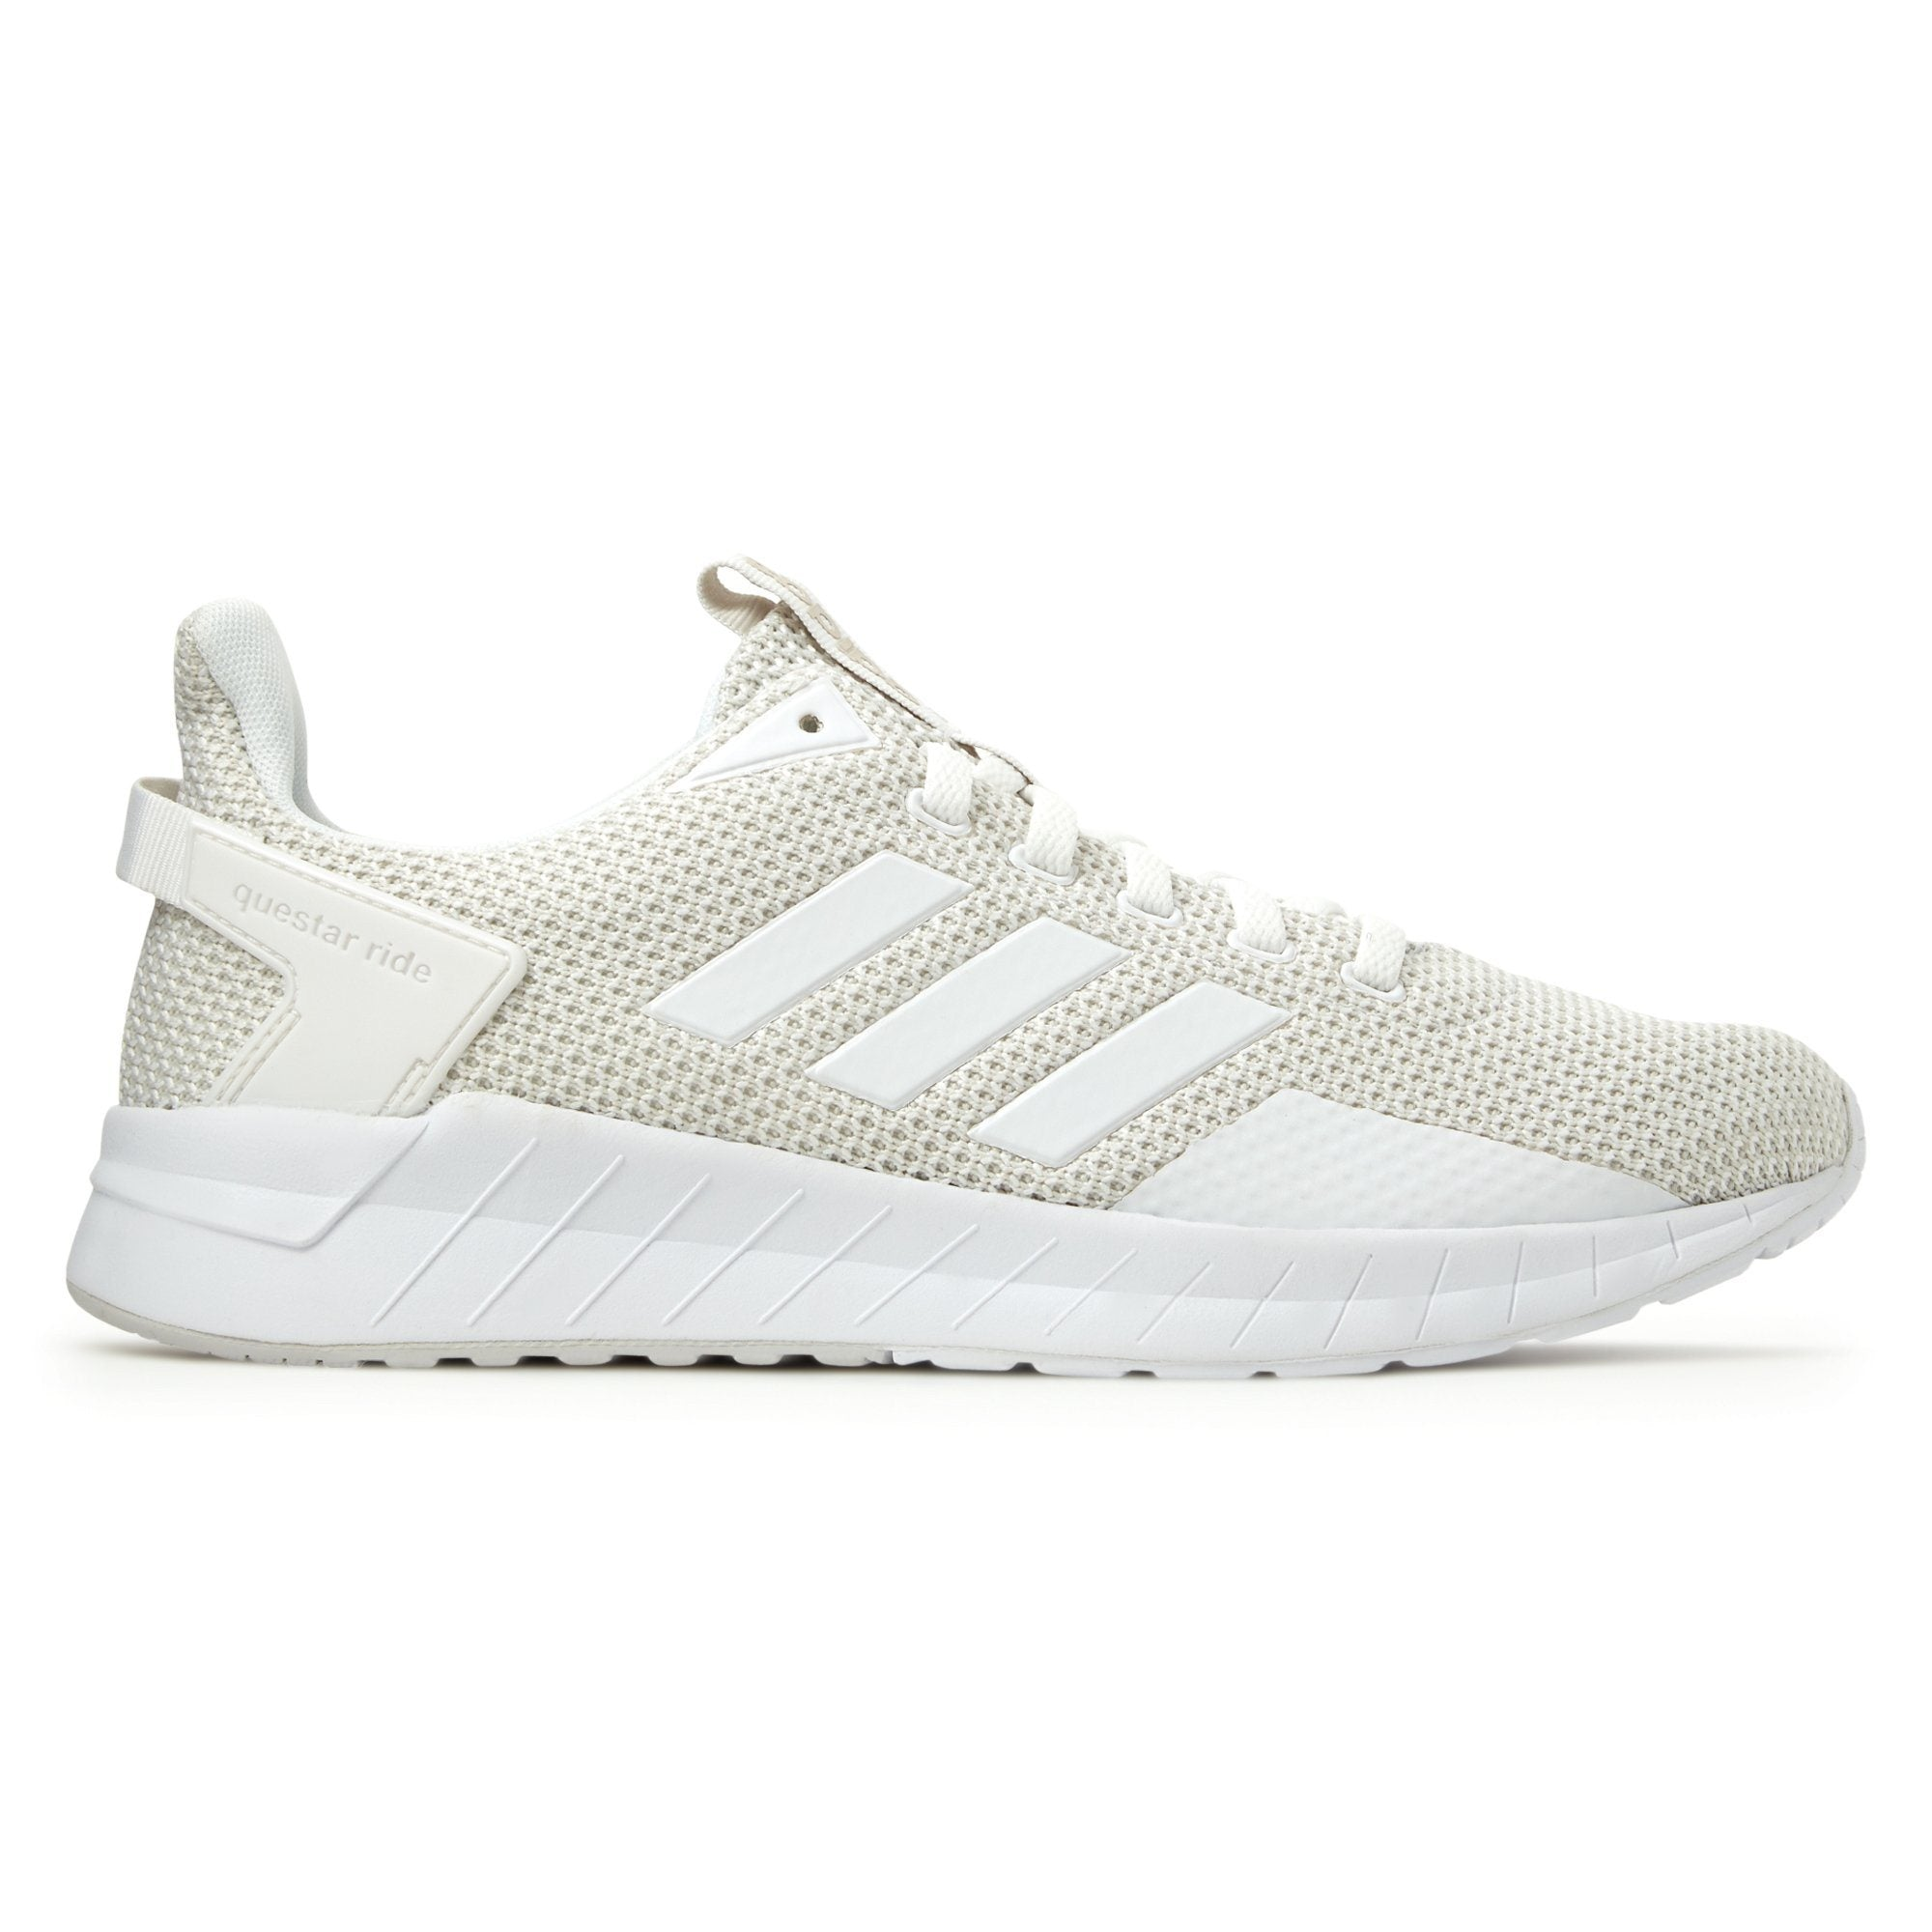 Adidas Women's Questar Ride Shoes - Ftwr White / ftwr White / Grey One Footwear Adidas  (2012422012987)